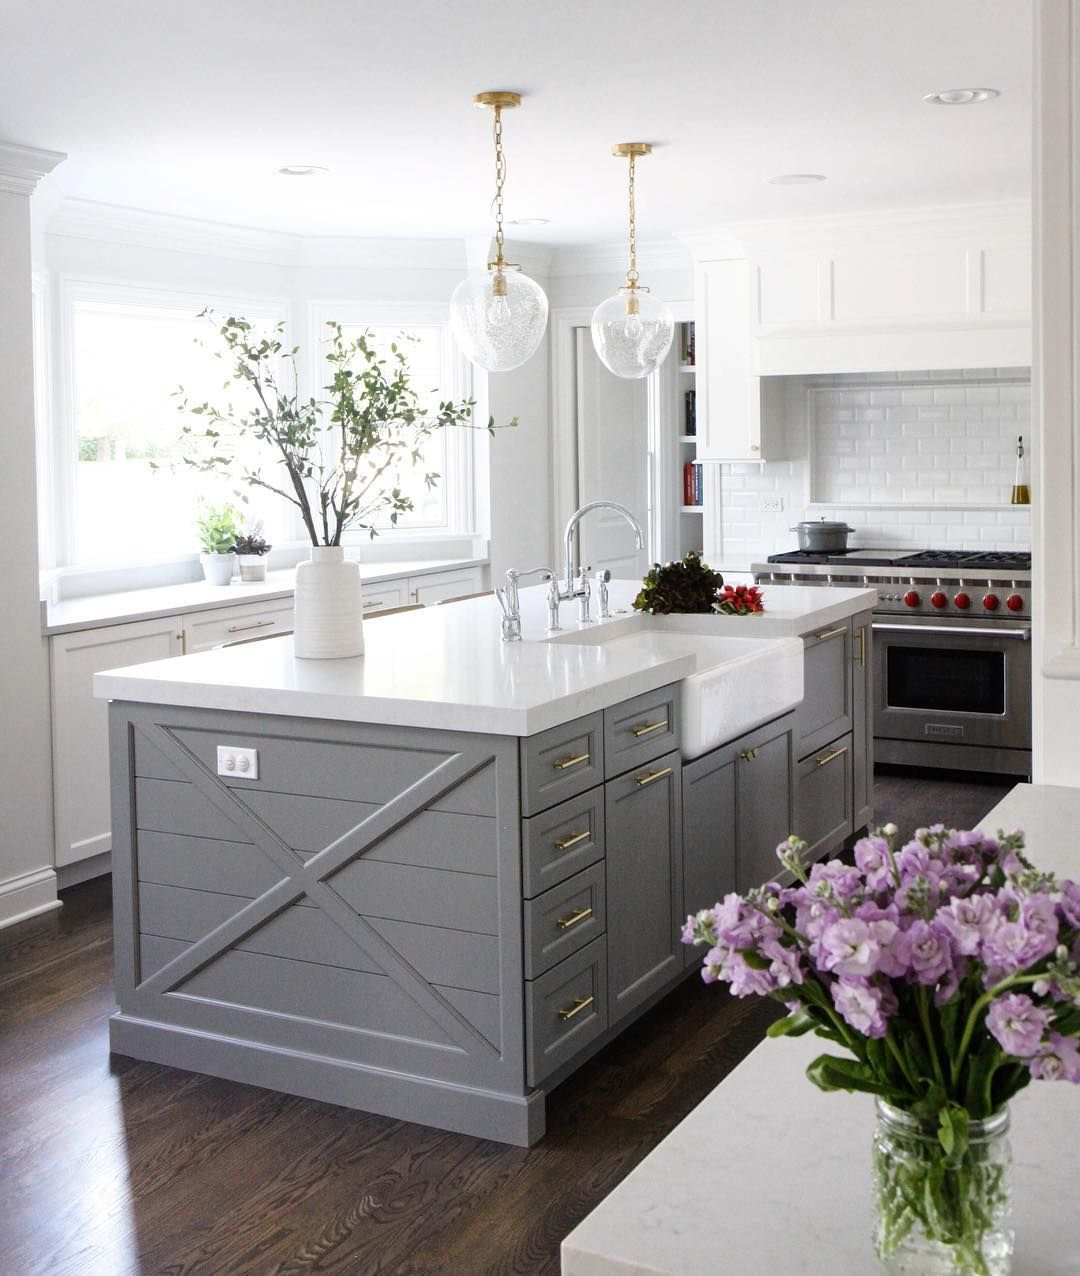 Kitchen Island Paint Color Is Chelsea Gray Benjamin Moore Via Park - Popular paint colors for kitchen cabinets